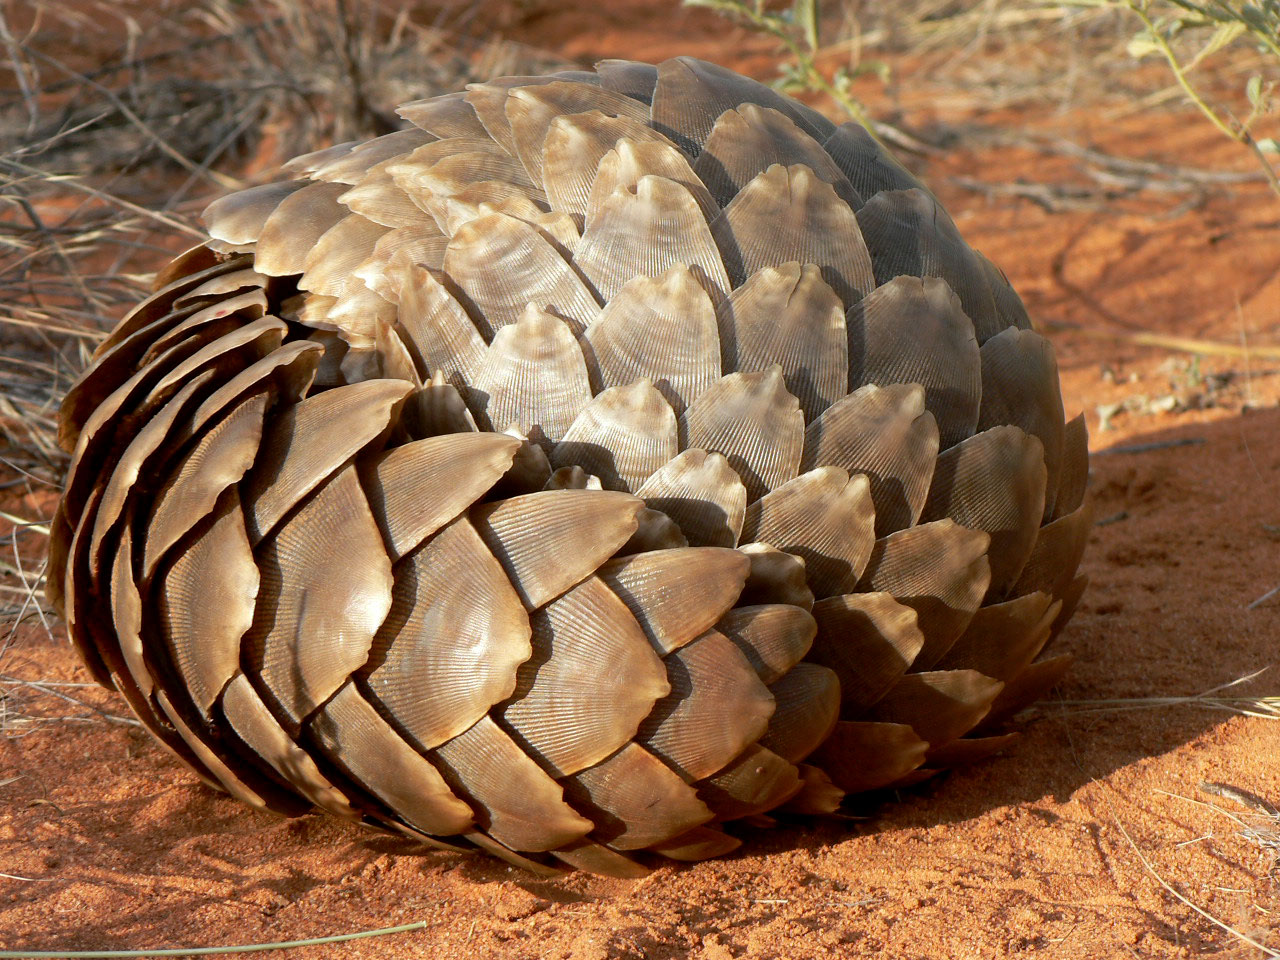 pangolin-curled-up-APWG